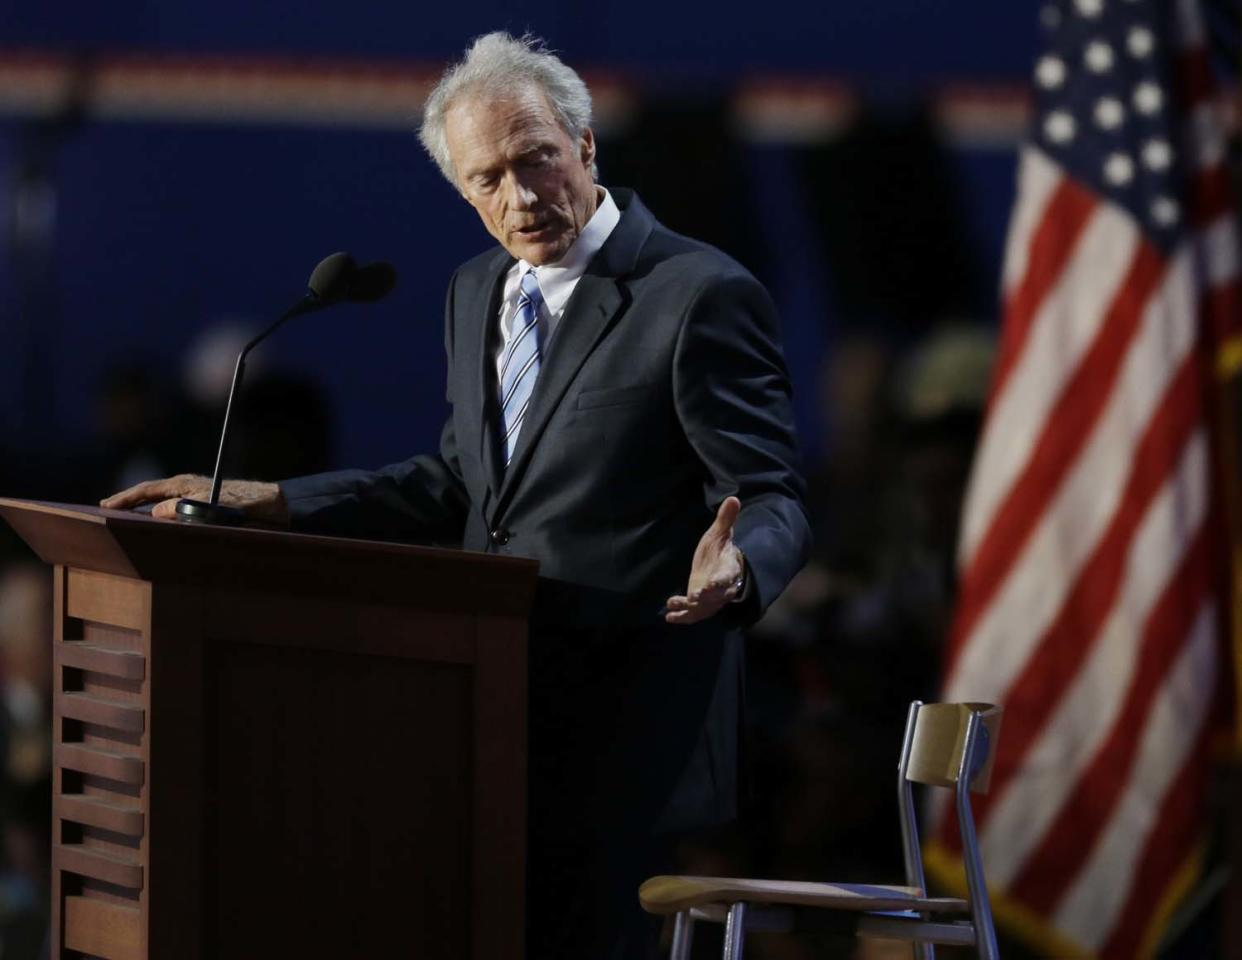 FILE - In this Aug. 30, 2012 file photo, actor Clint Eastwood speaks to an empty chair while speaking to delegates at the Republican National Convention in Tampa, Fla. Campaign 2012 is rich with images that conjure the seriousness and silliness that unfold side-by-side in any presidential race. Sad to say, Eastwood's rambling conversation with an empty chair representing Obama during the GOP convention may well be the single most memorable moment of the 2012 presidential campaign. And the only candidate in that tableau was invisible. (AP Photo/Lynne Sladky, File)